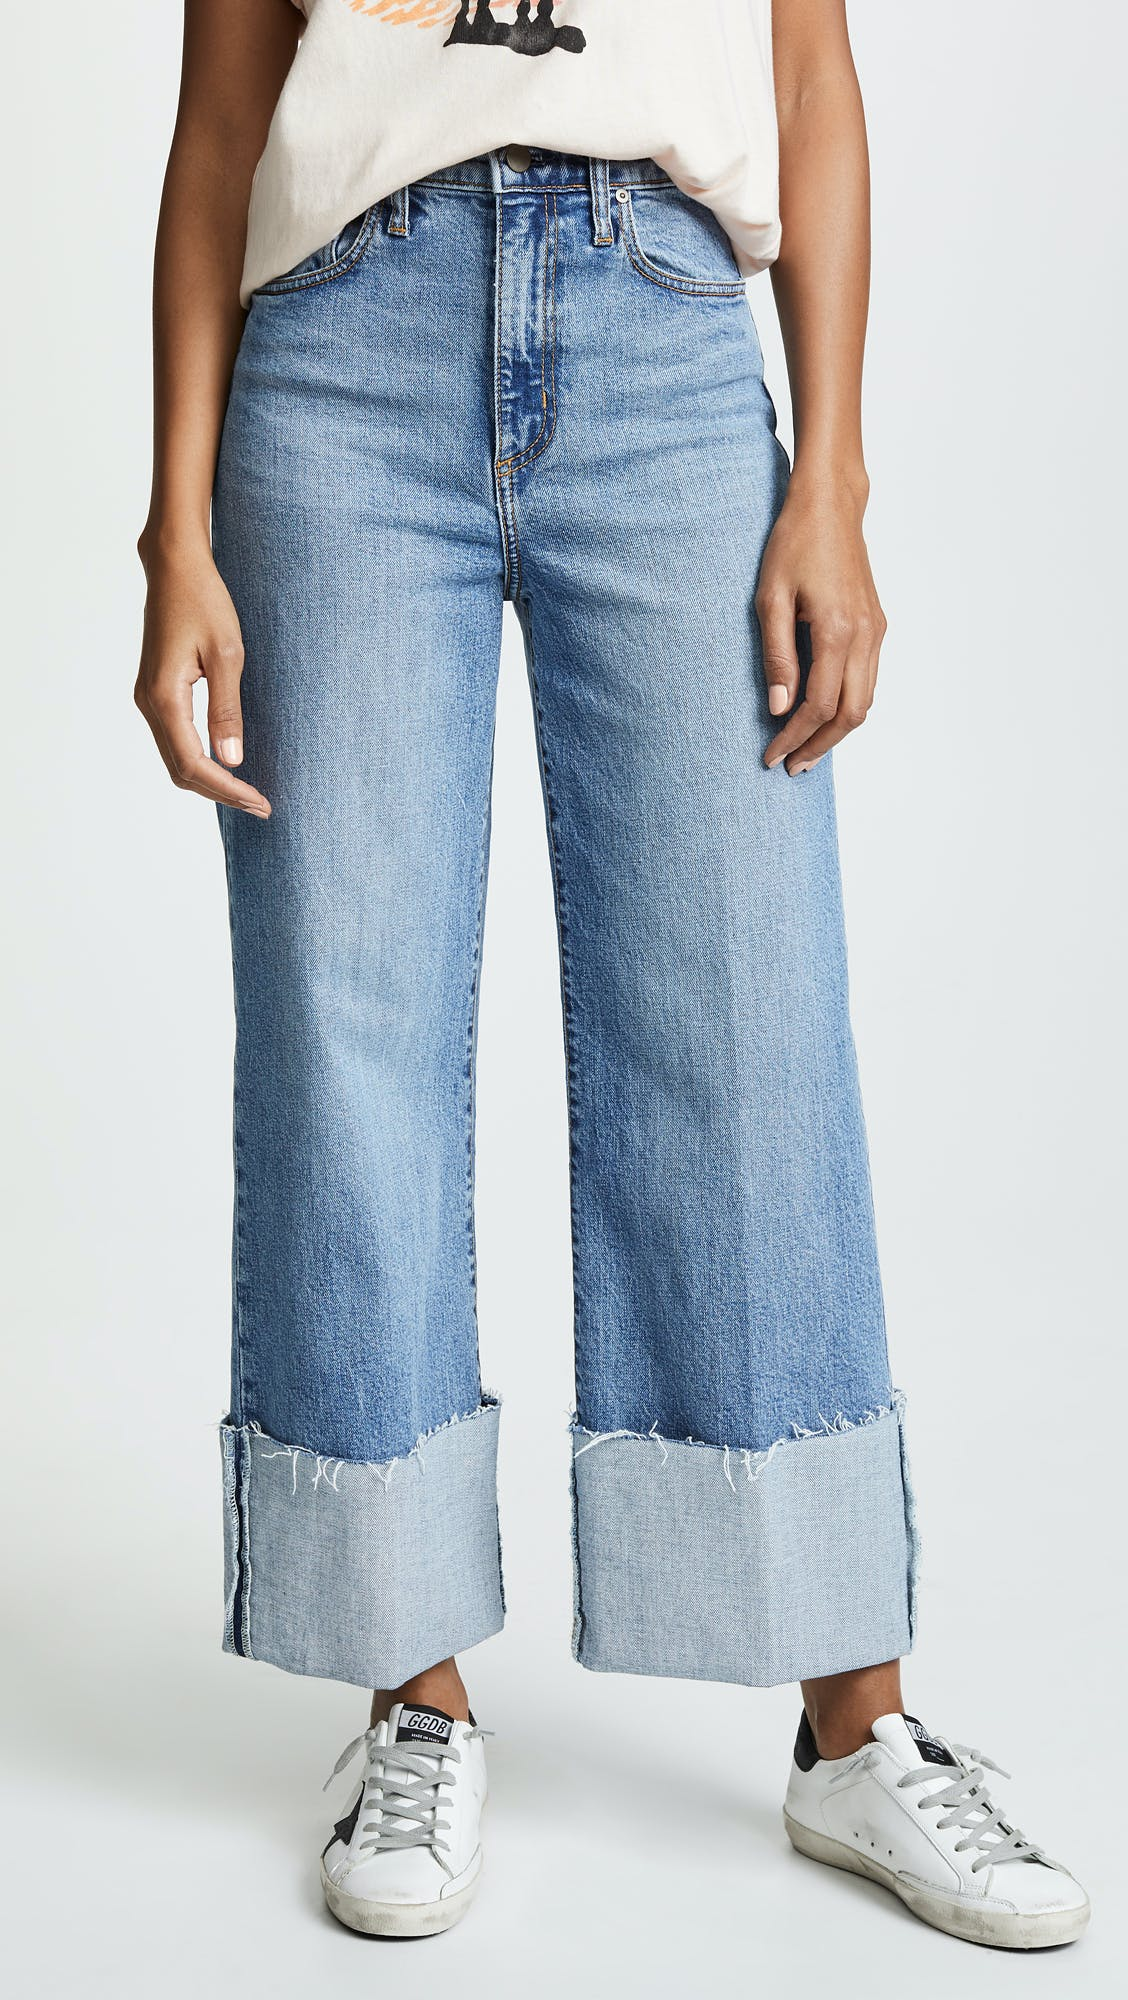 nobody jeans, cuffed jeans, high rise jeans, wide leg jeans, high waisted jeans, light washed denim